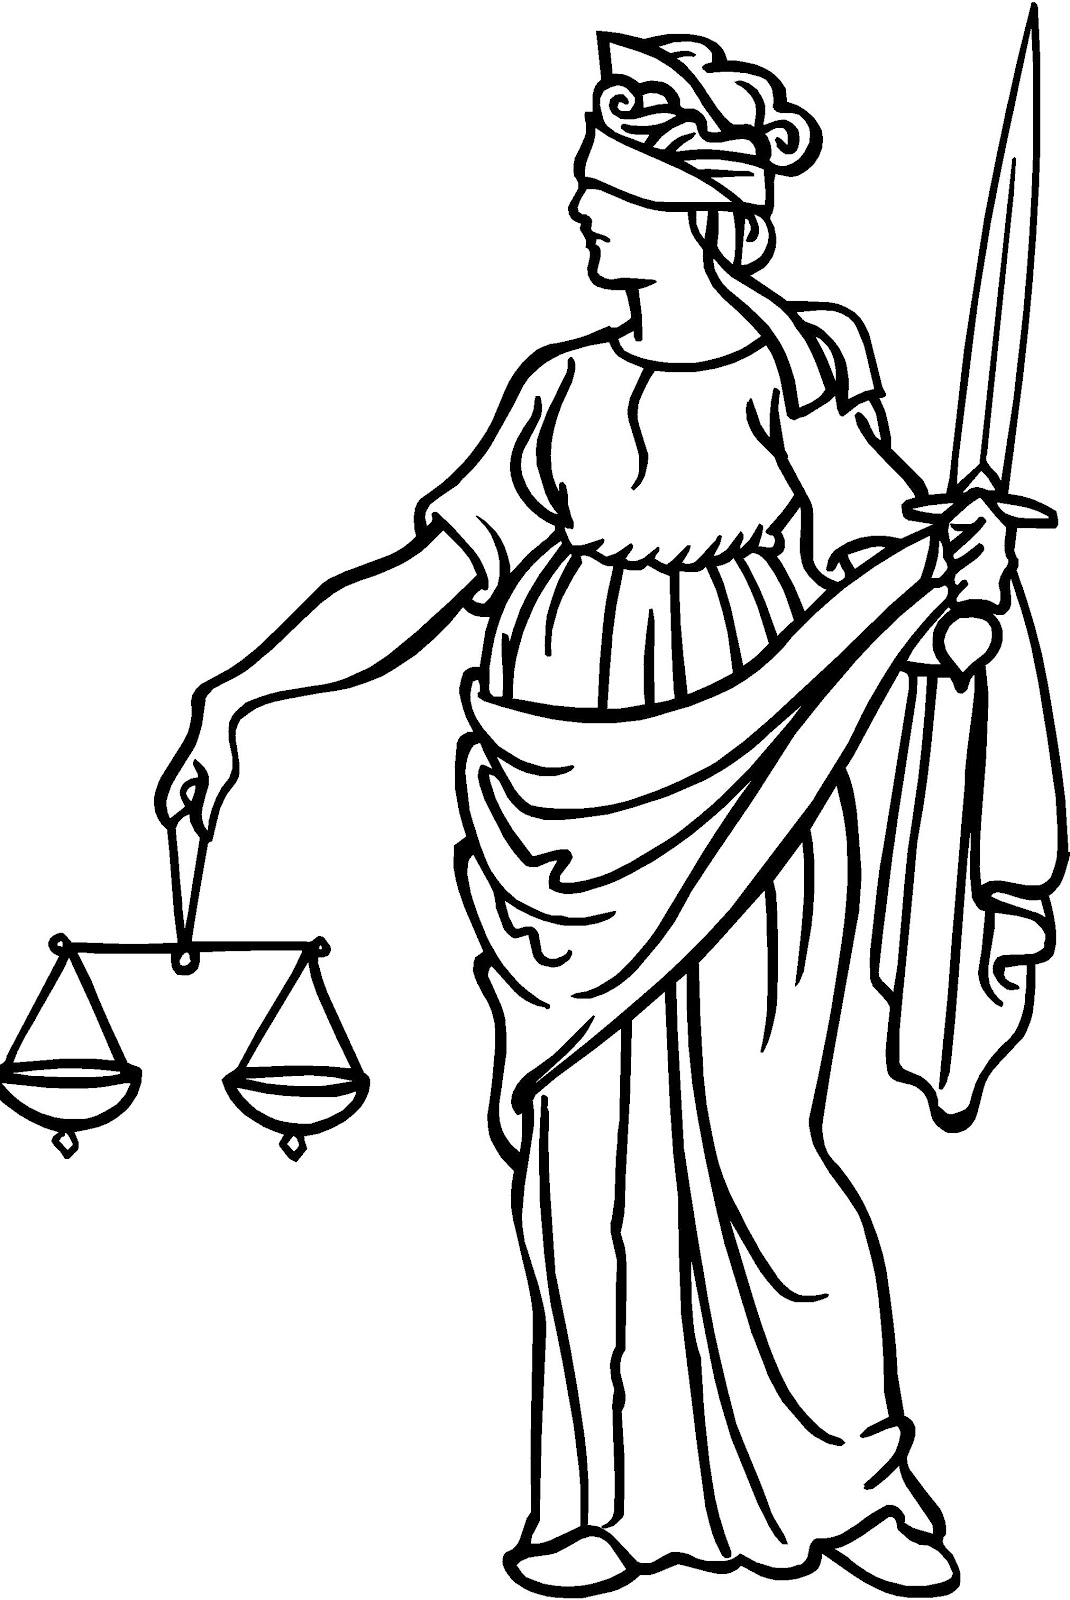 Scale Of Justice Clip Art, Scales Of Justice Free Clipart.